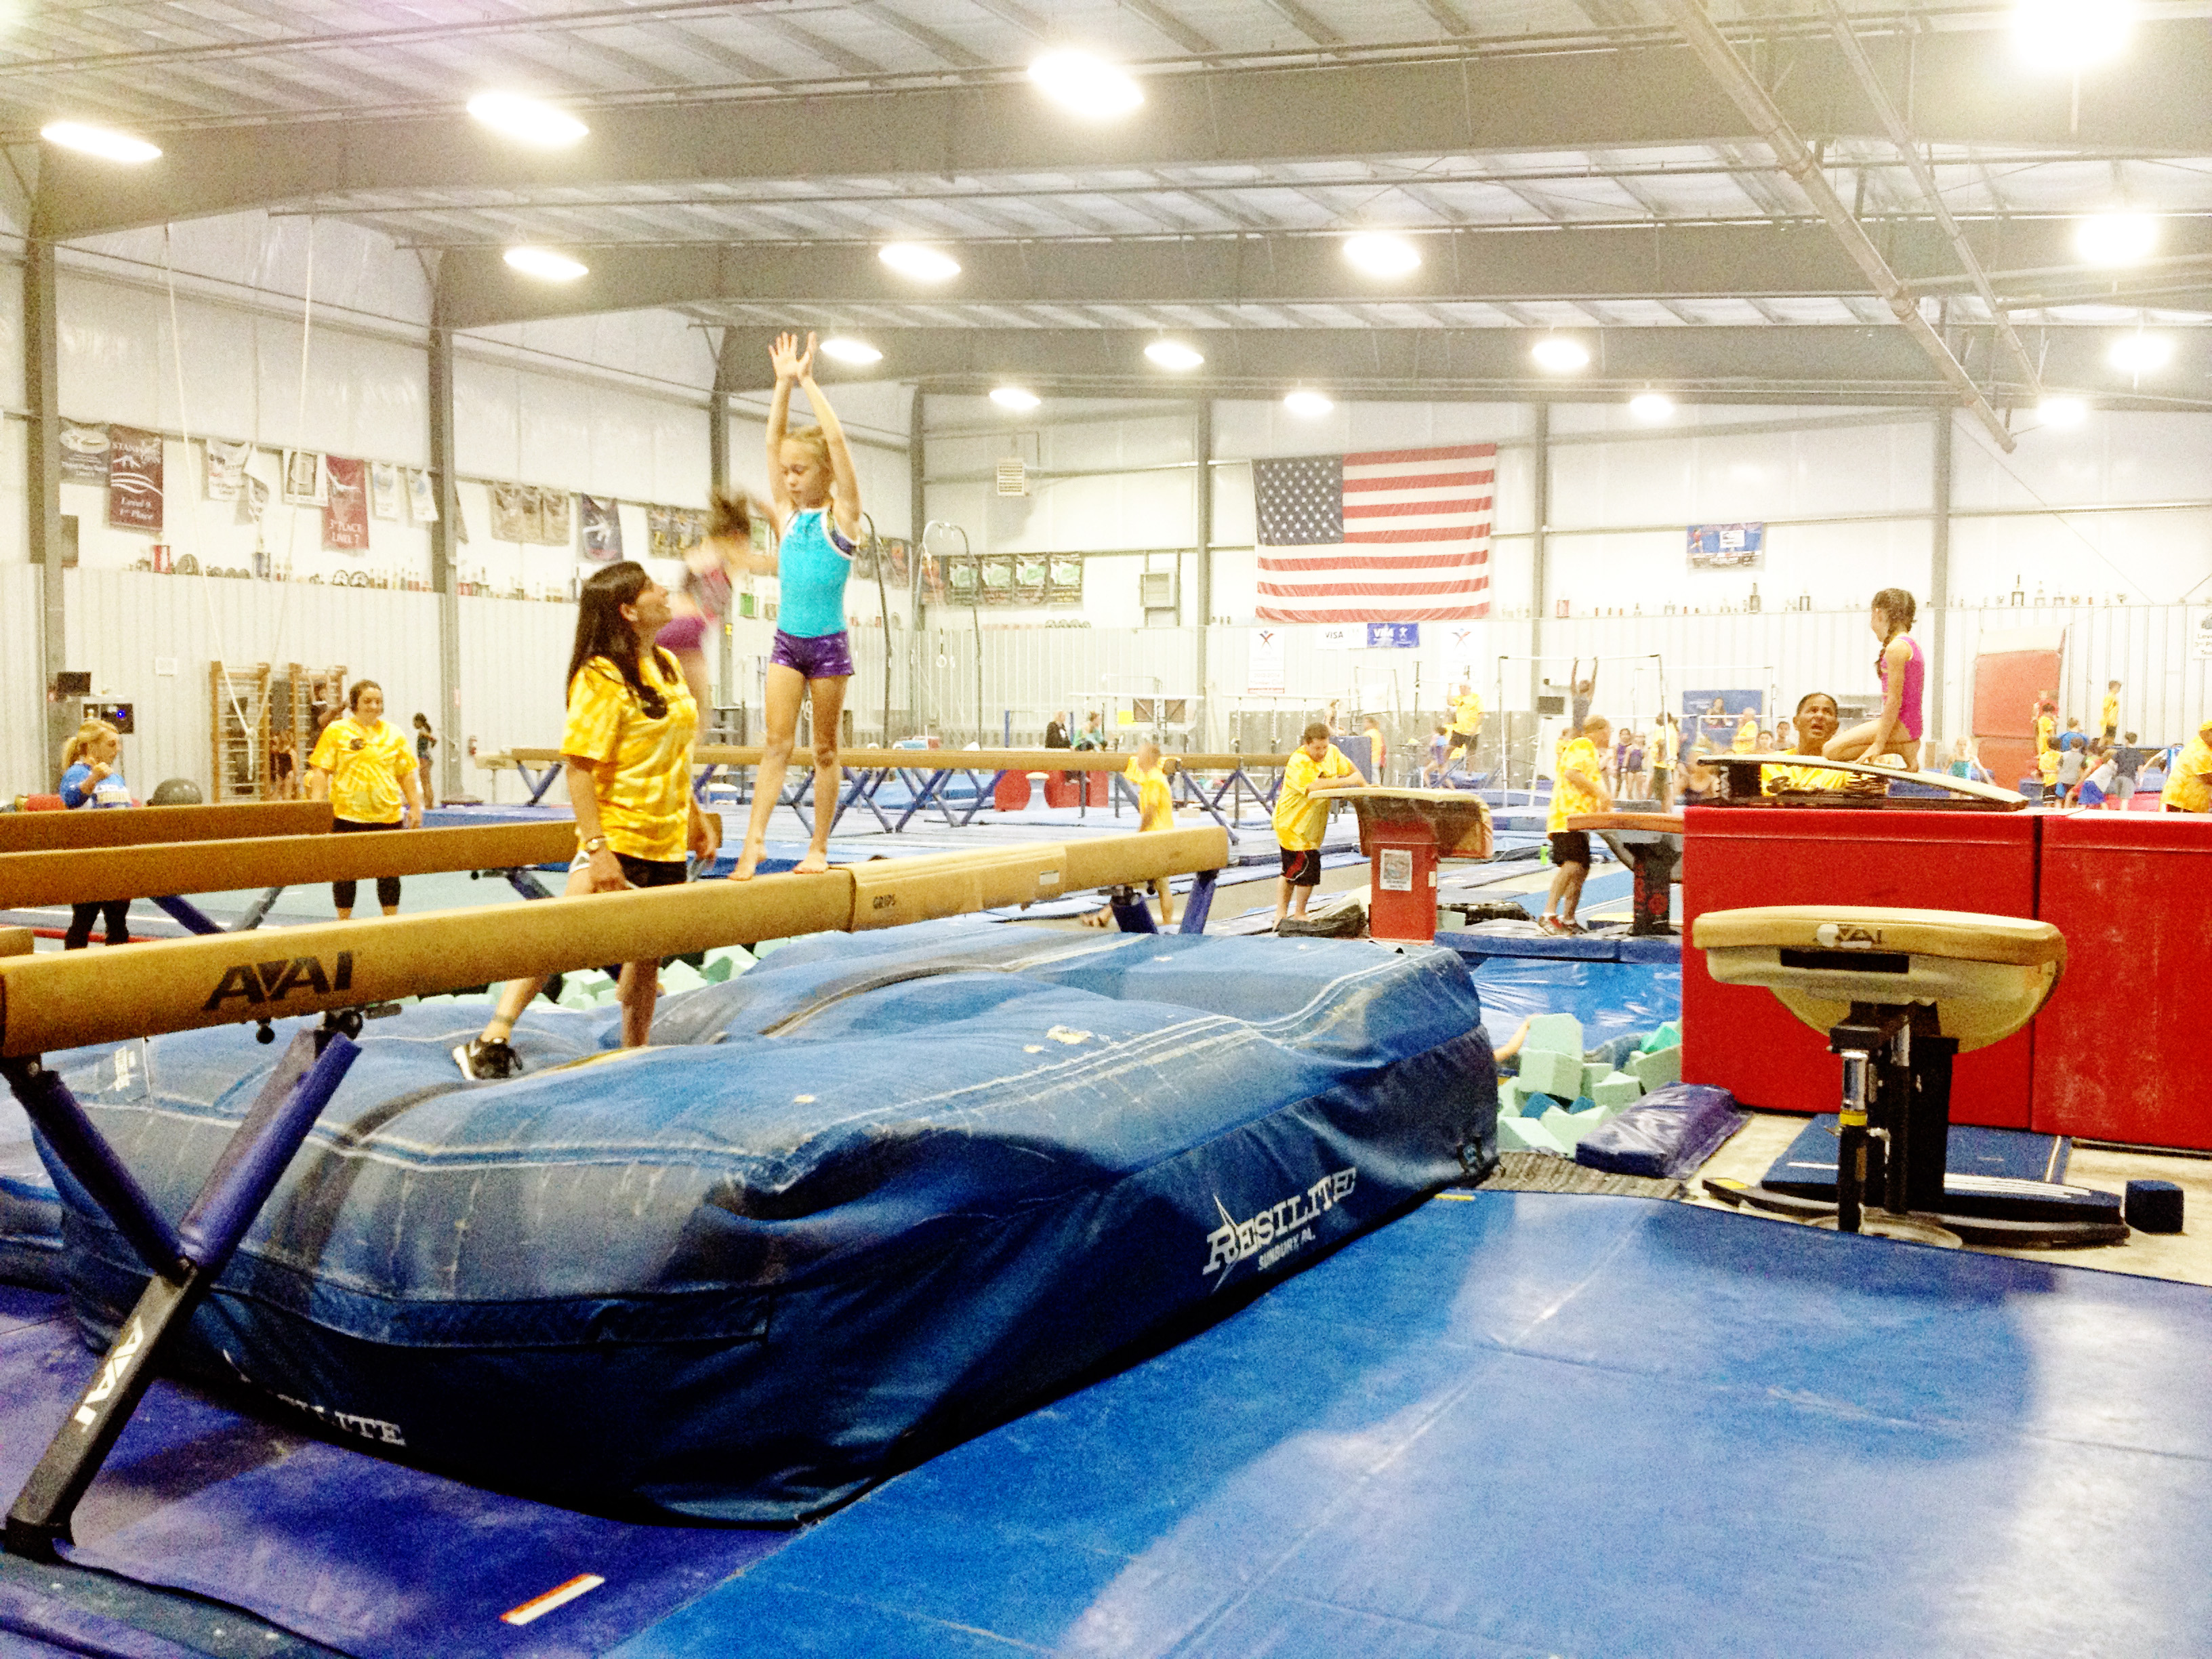 Oregon Olympic Athletics Coach Mohini teaching  beam as a guest coach at Dan Alch's camp of Champions.